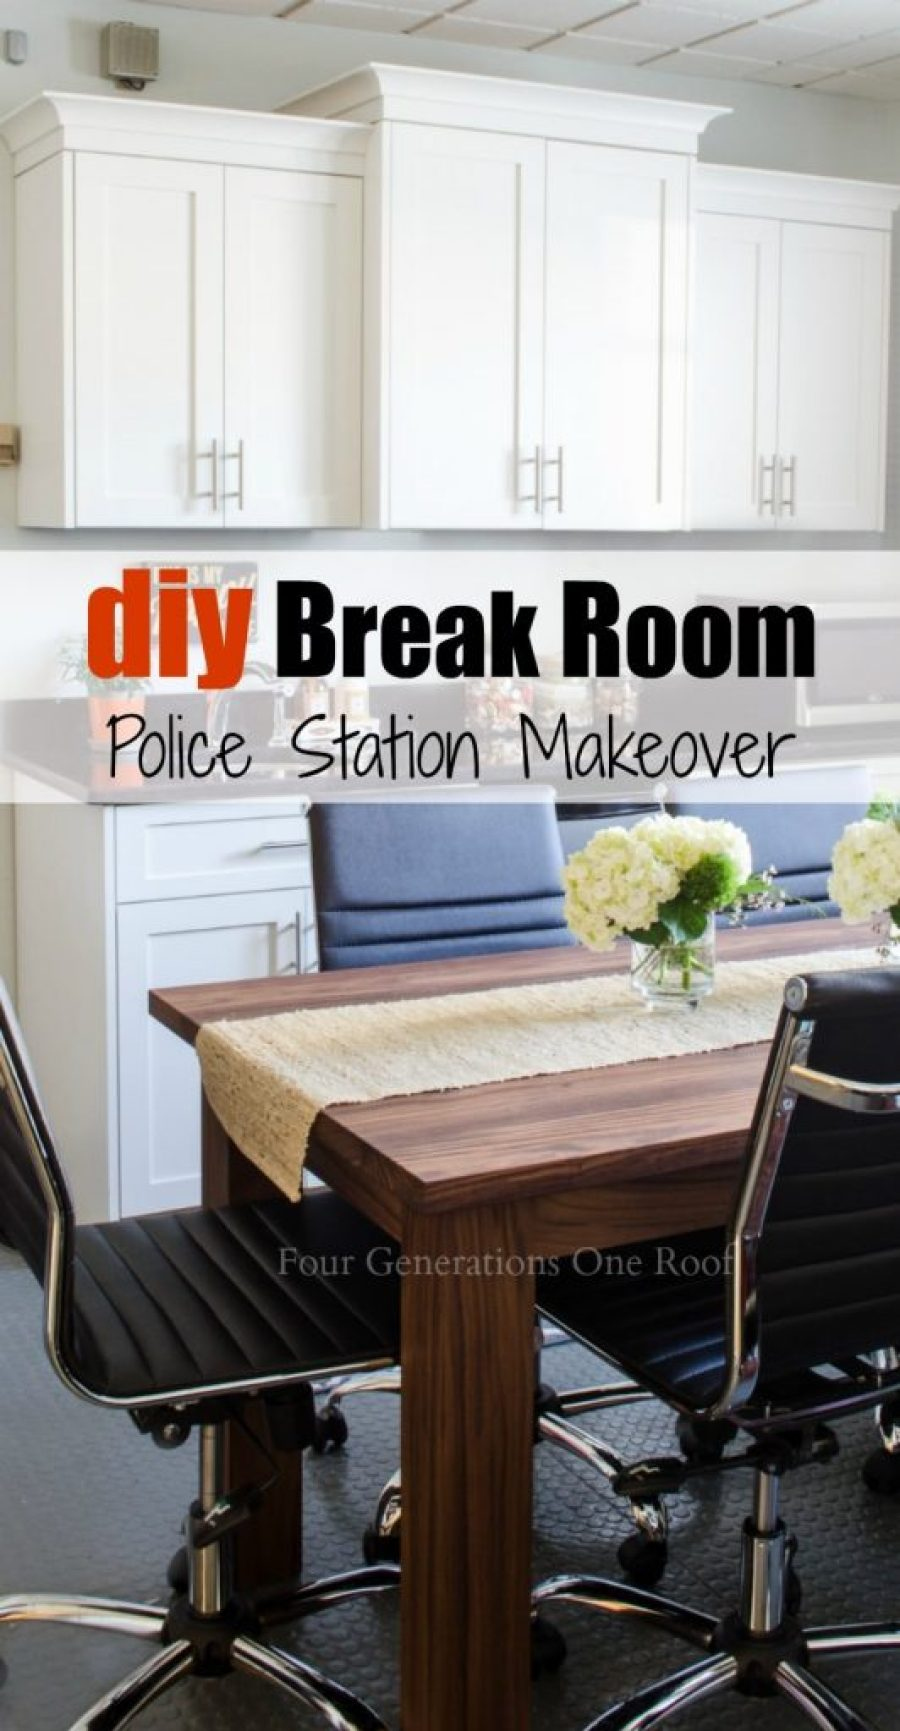 Police Station break room makeover : DIY workstation/DIY kitchen/DIY table